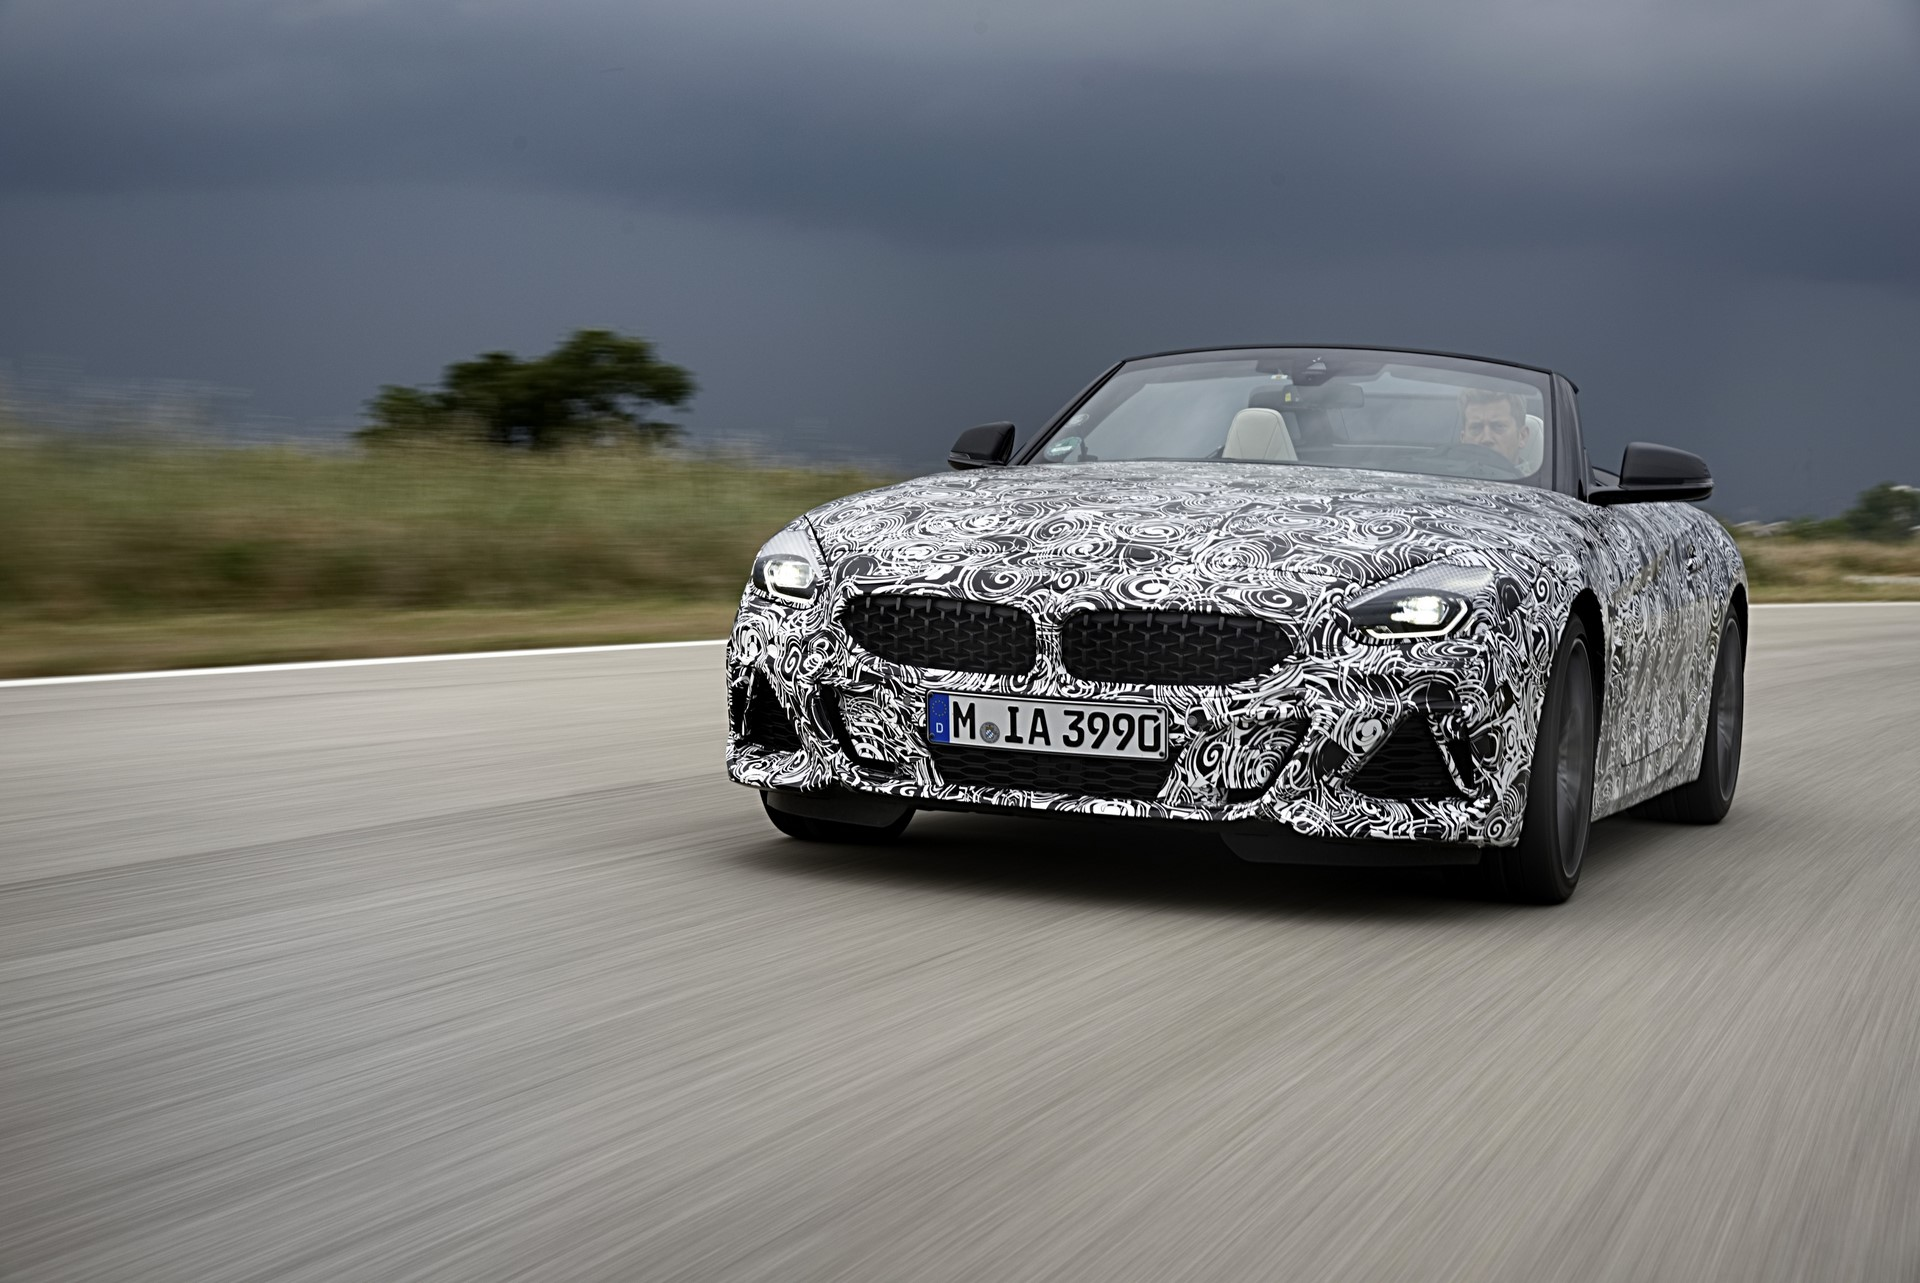 BMW Z4 M40i 2019 official spy photos (8)